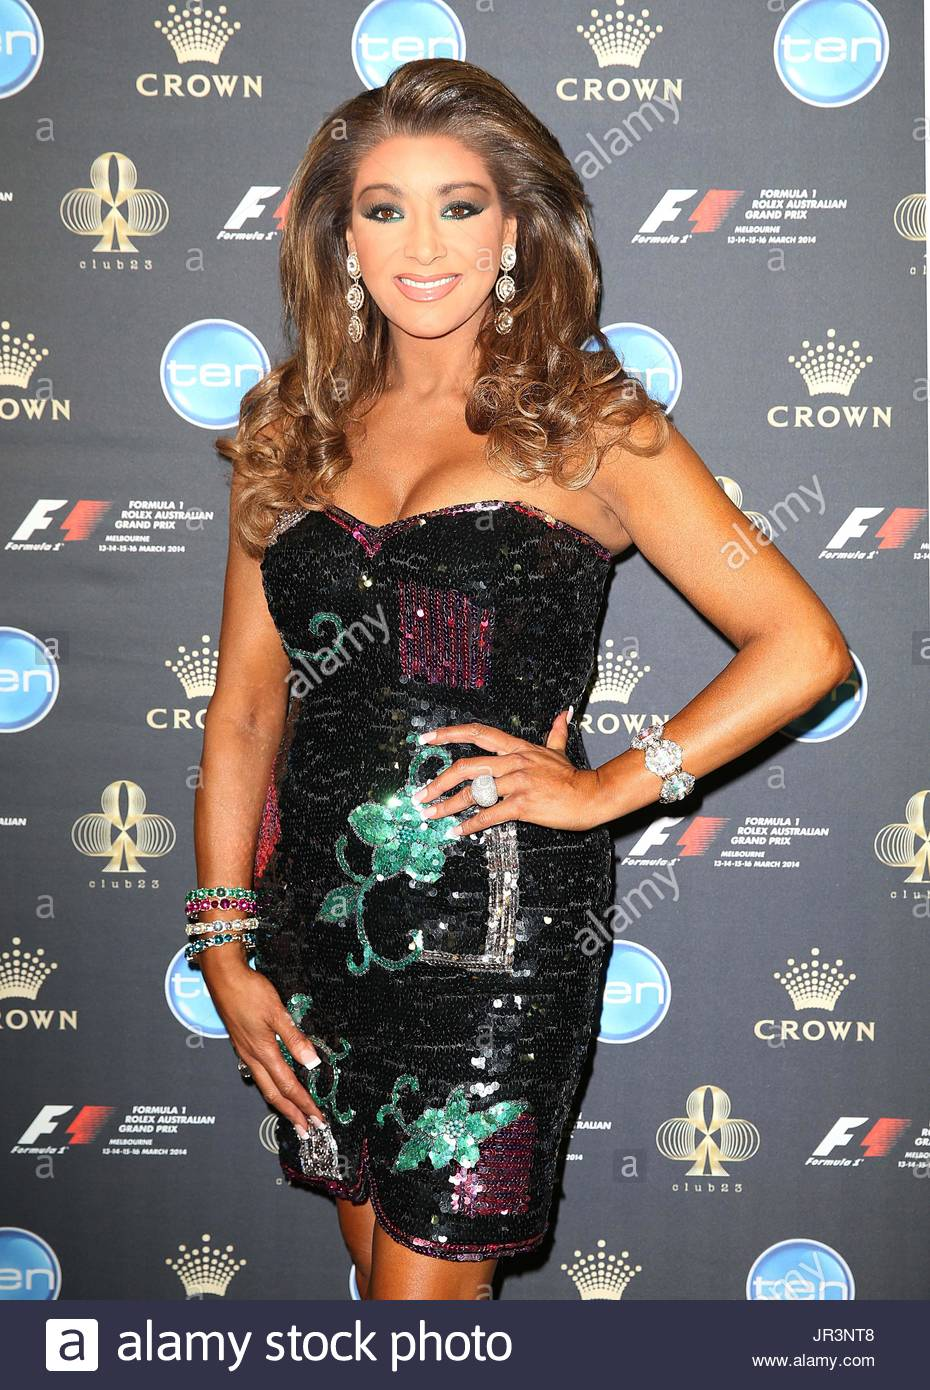 Celebrity Gina Liano nudes (33 photo), Ass, Sideboobs, Boobs, panties 2020